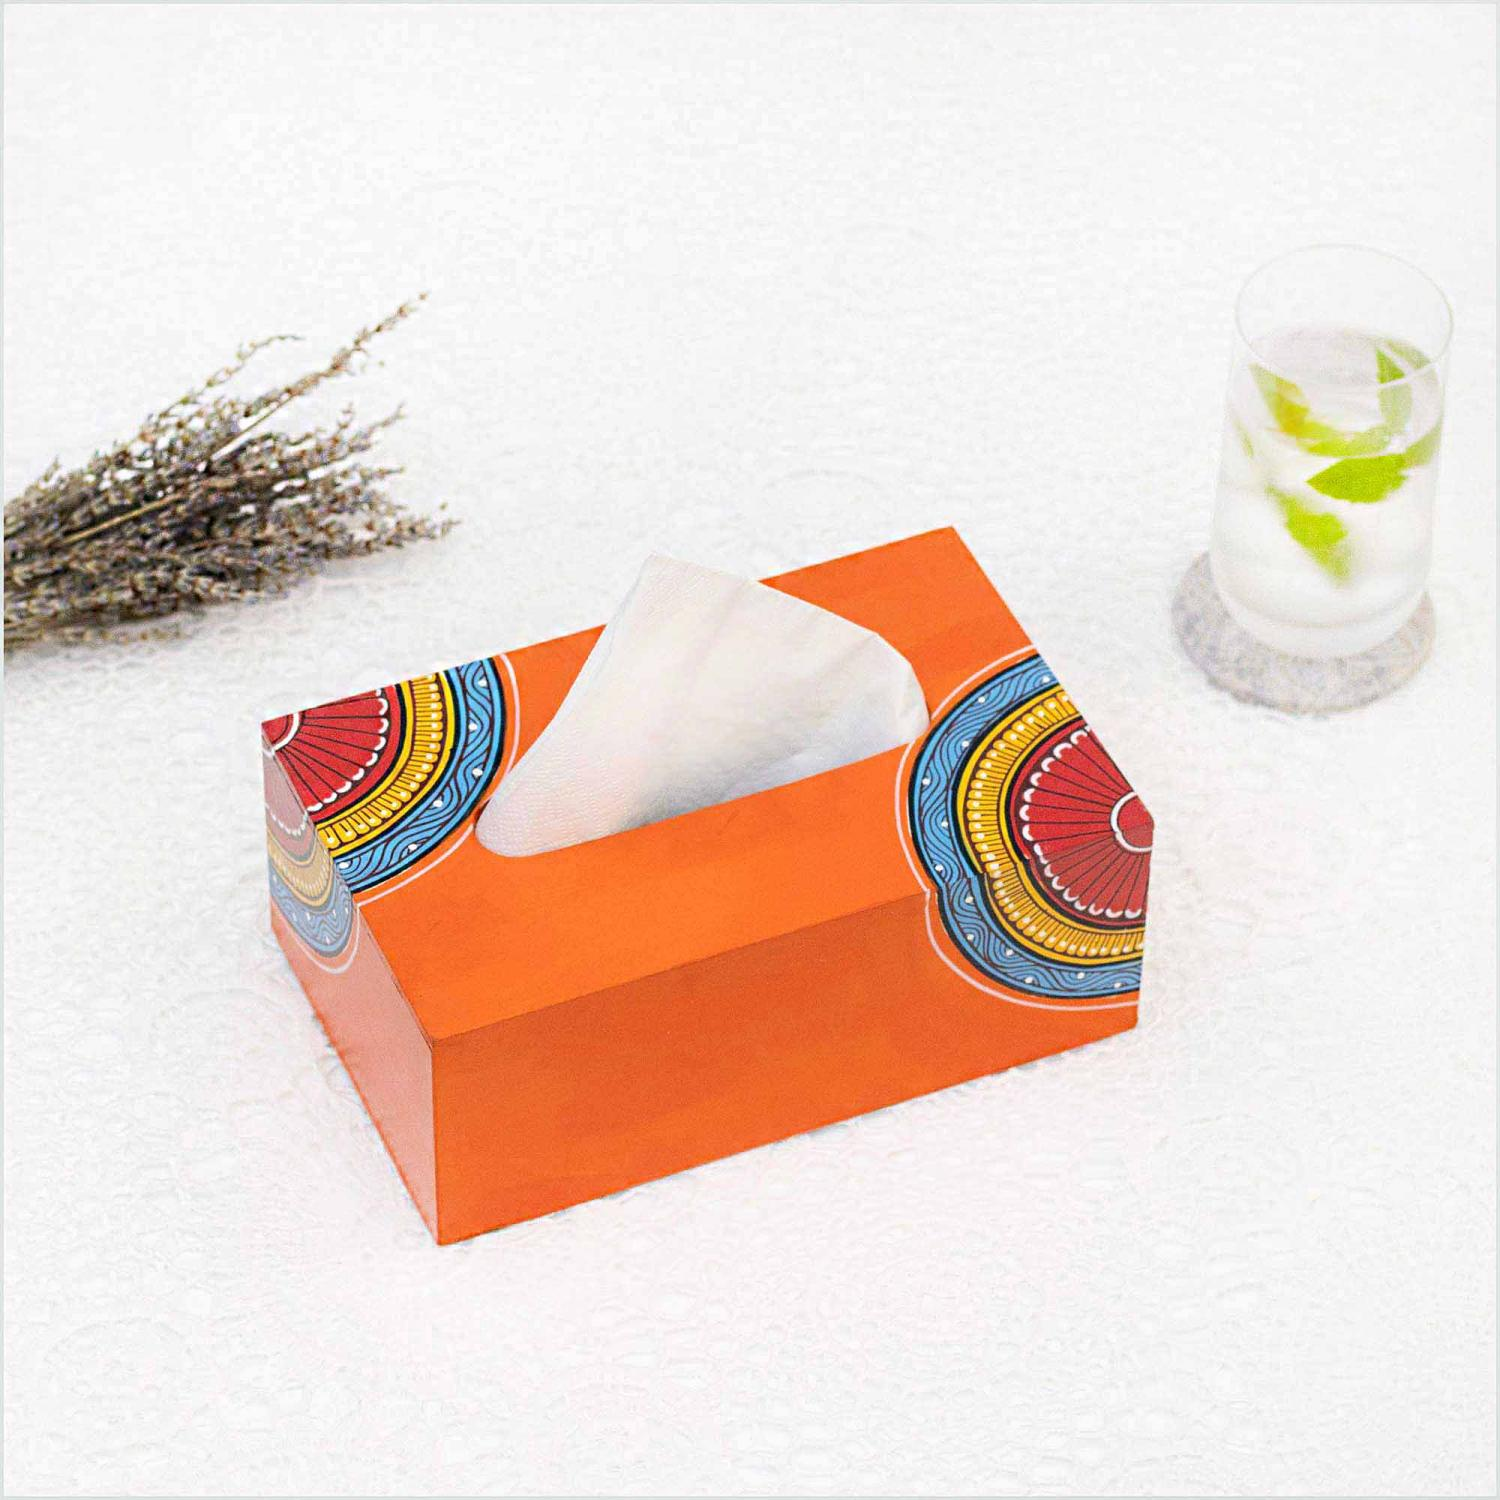 Orange napkin holder with blue, yellow and red motifs holding white napkins and standing on a white surface with a glass with green leaves in the right and a dried lavender in the left and a white wall in the background